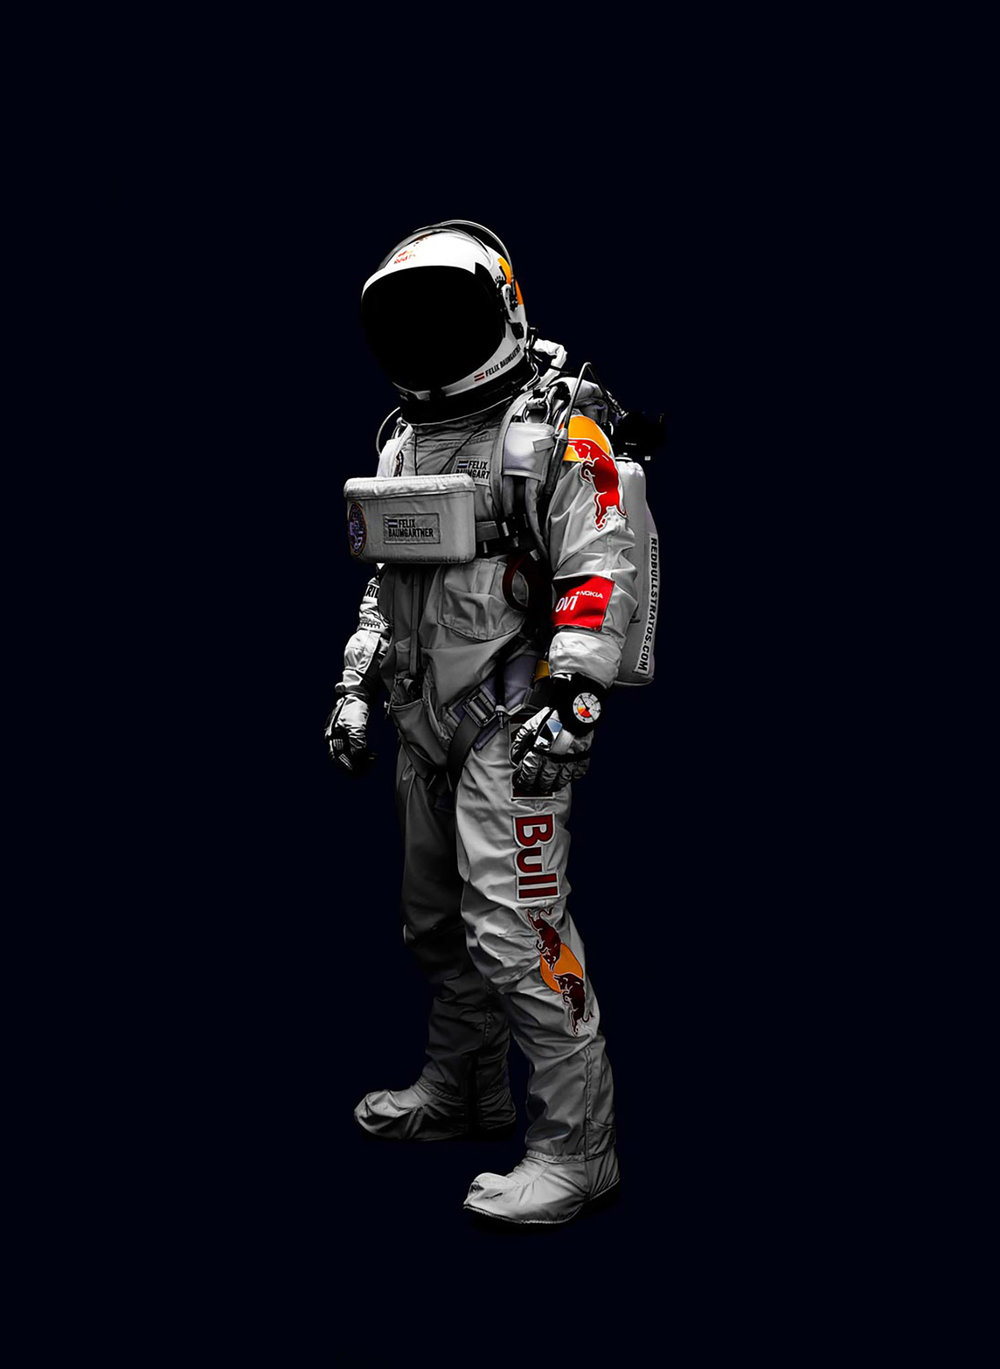 Felix Baumgartner in the Red Bull Stratos Space Diving Suit, Santa Monica, California, 2010